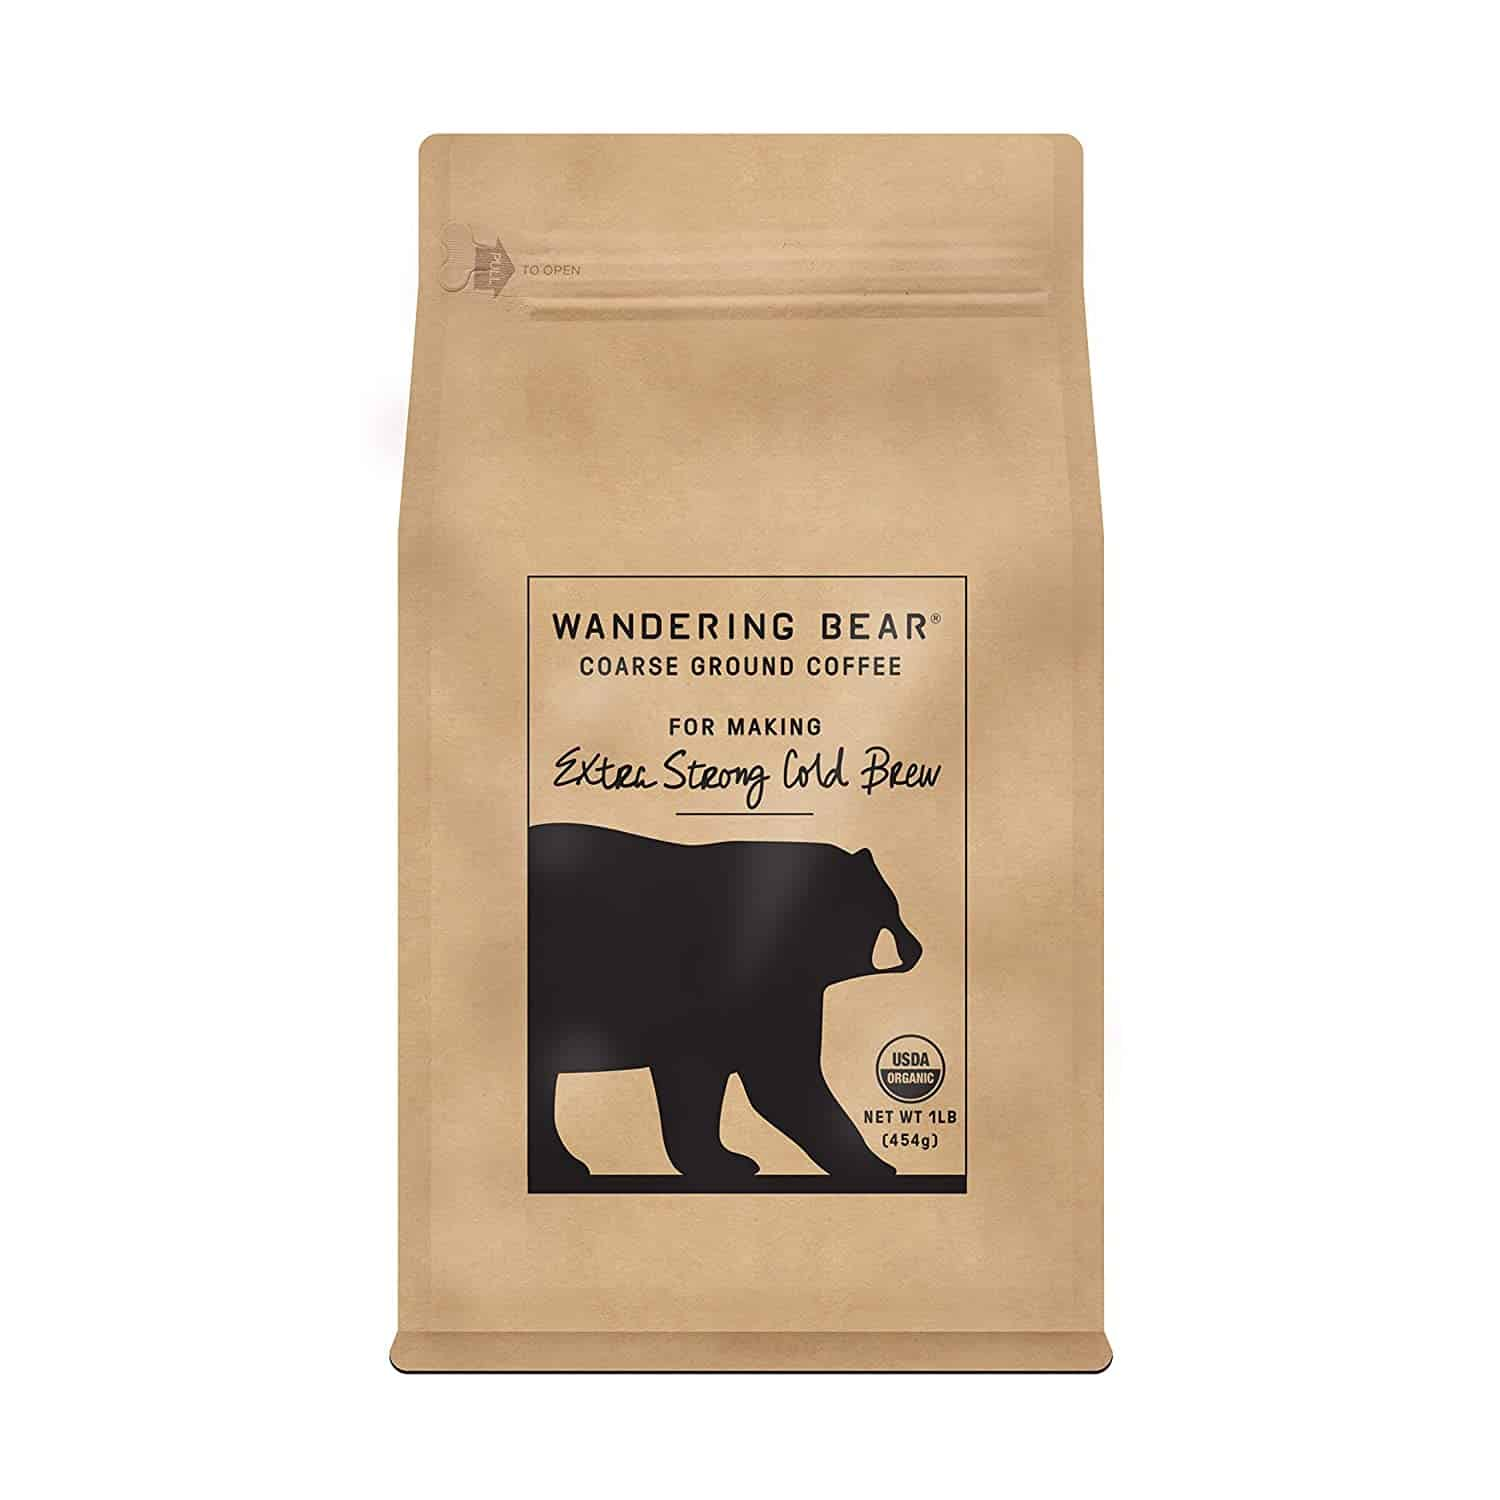 Wandering Bear coffee for cold brew